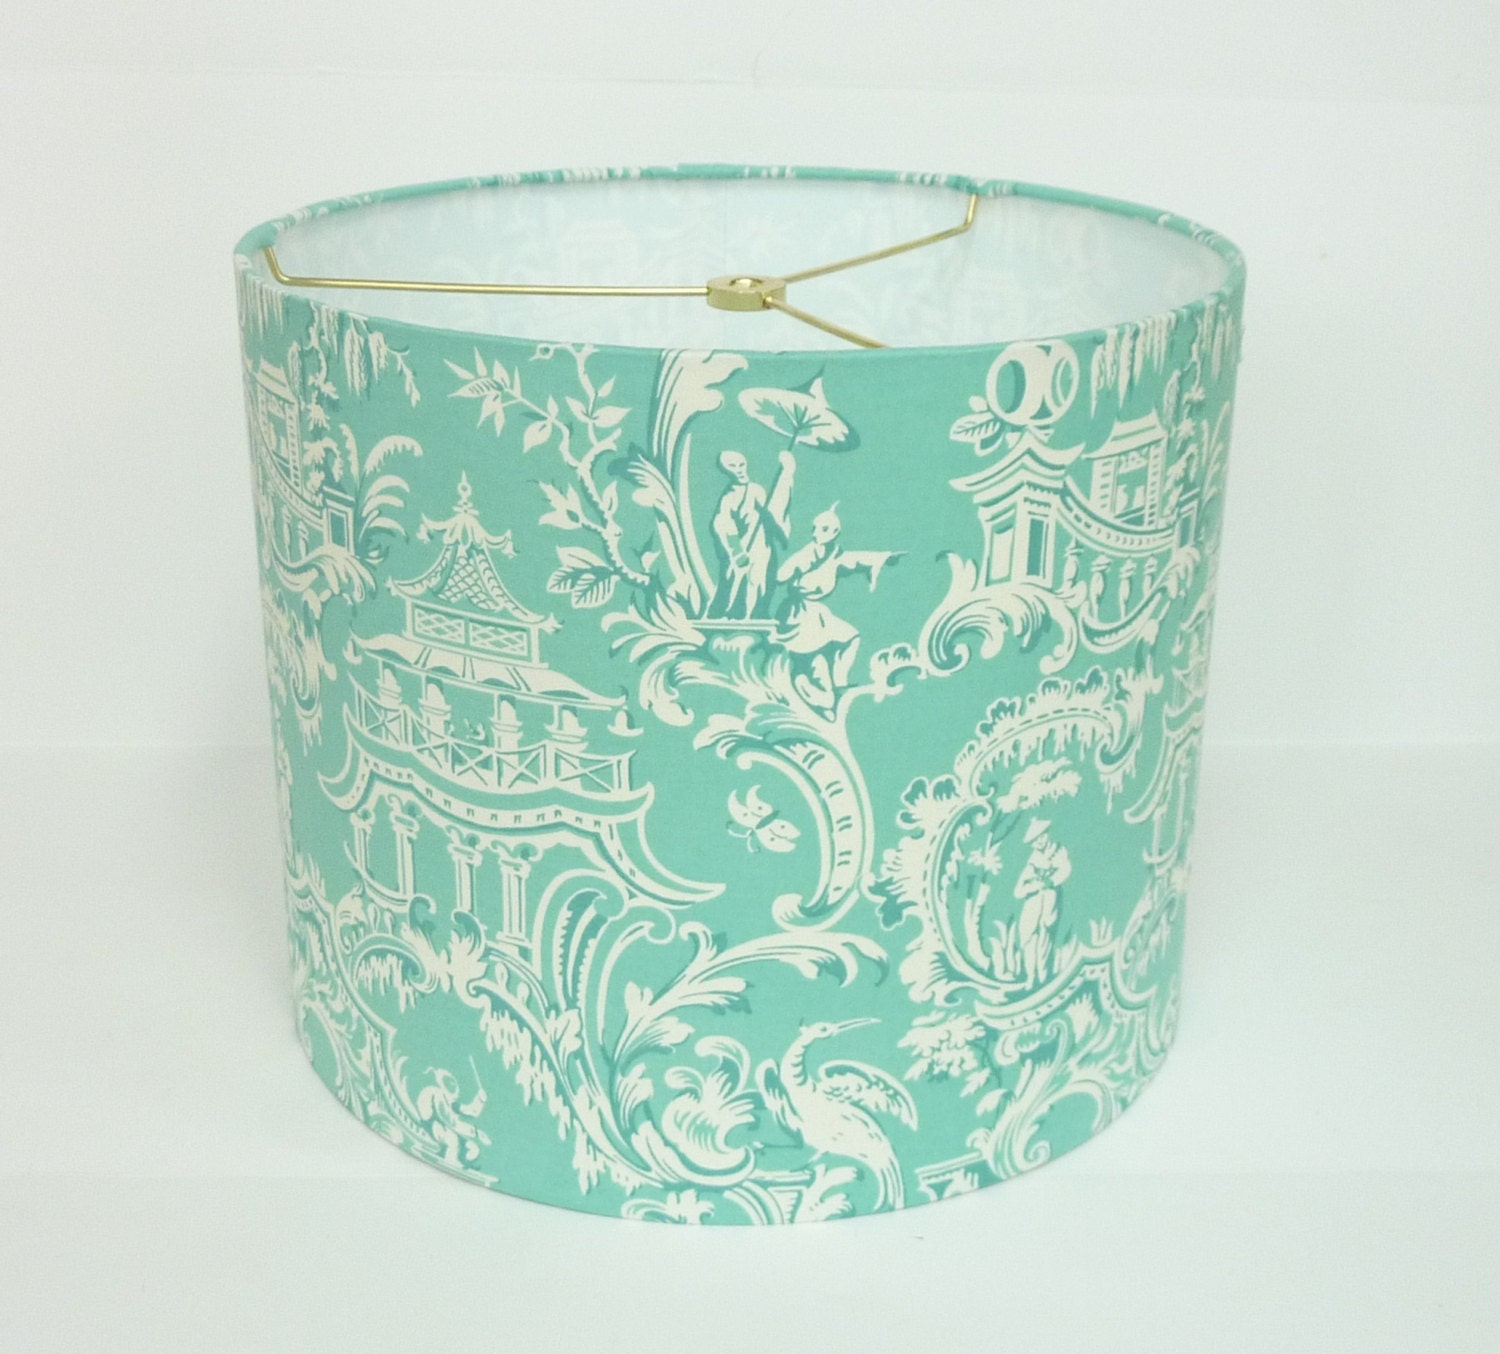 aqua chinoiserie lamp shade by lampshadedesigns on etsy. Black Bedroom Furniture Sets. Home Design Ideas